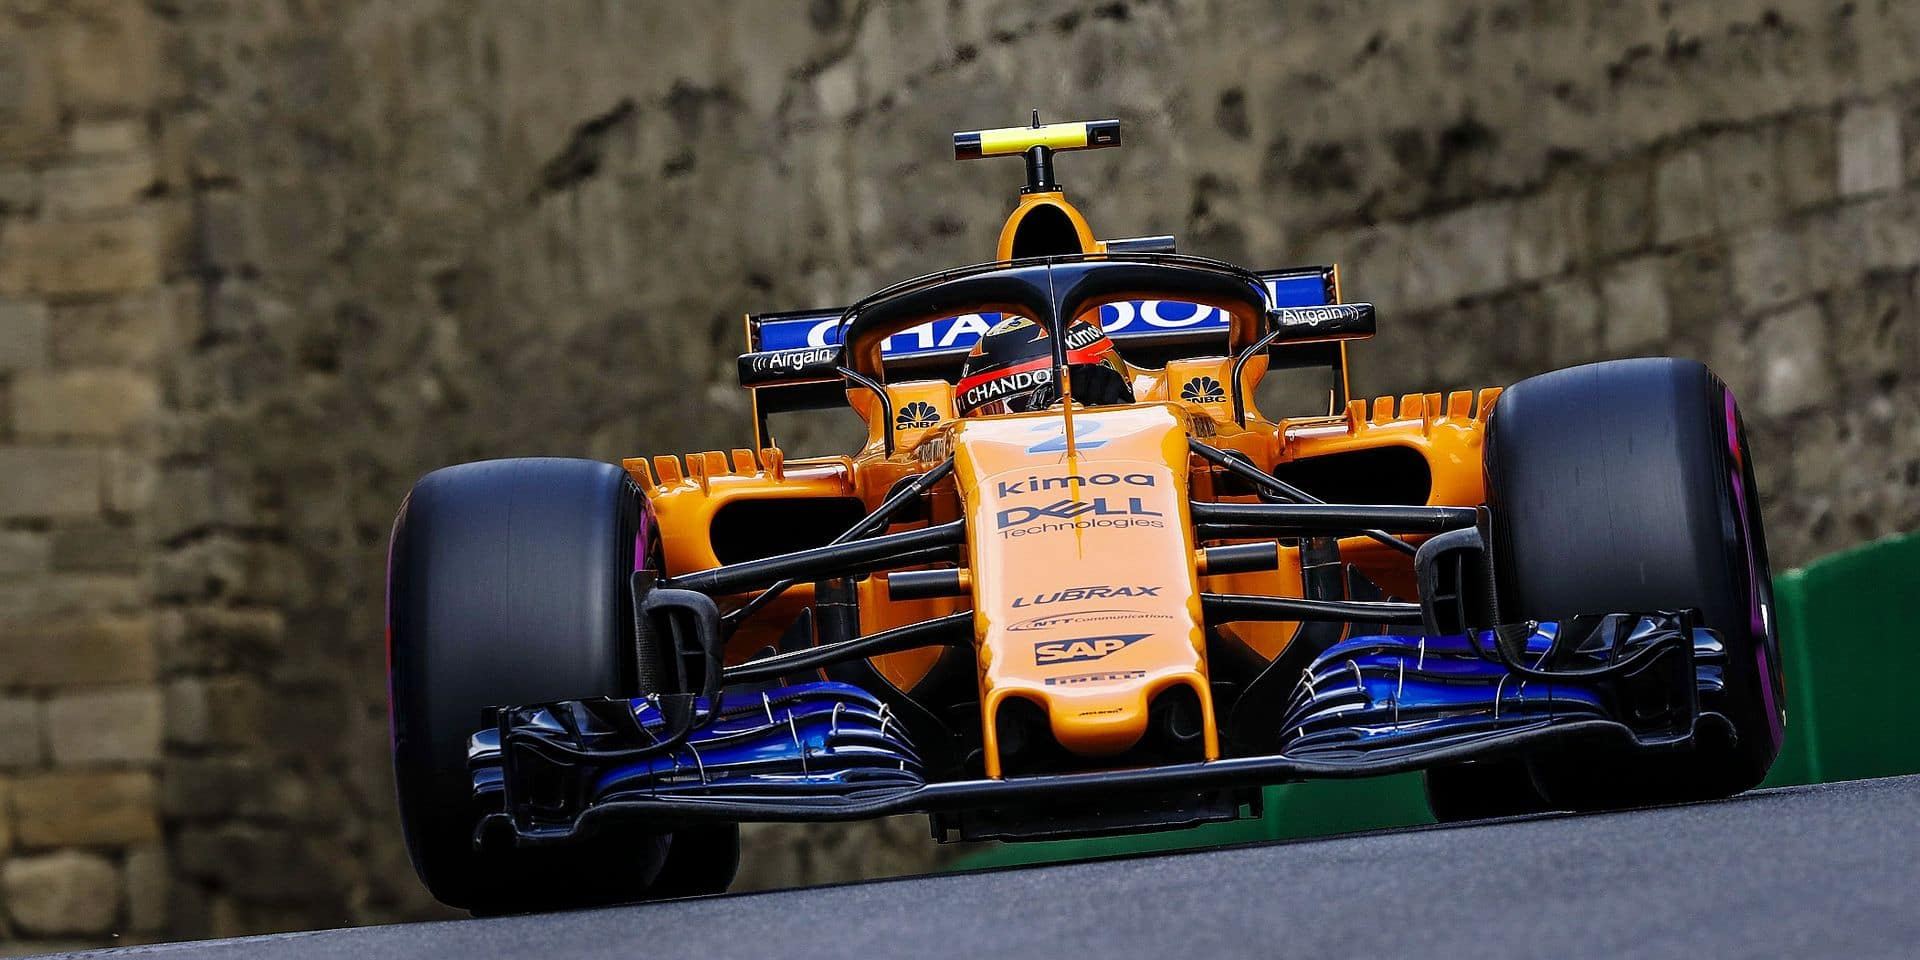 VANDOORNE Stoffel (bel), McLaren Renault MCL33, action during the 2018 Formula One World Championship, Grand Prix of Europe in Azerbaijan from April 26 to 29 in Baku - 28.04.2018. | usage worldwide Reporters / DPA